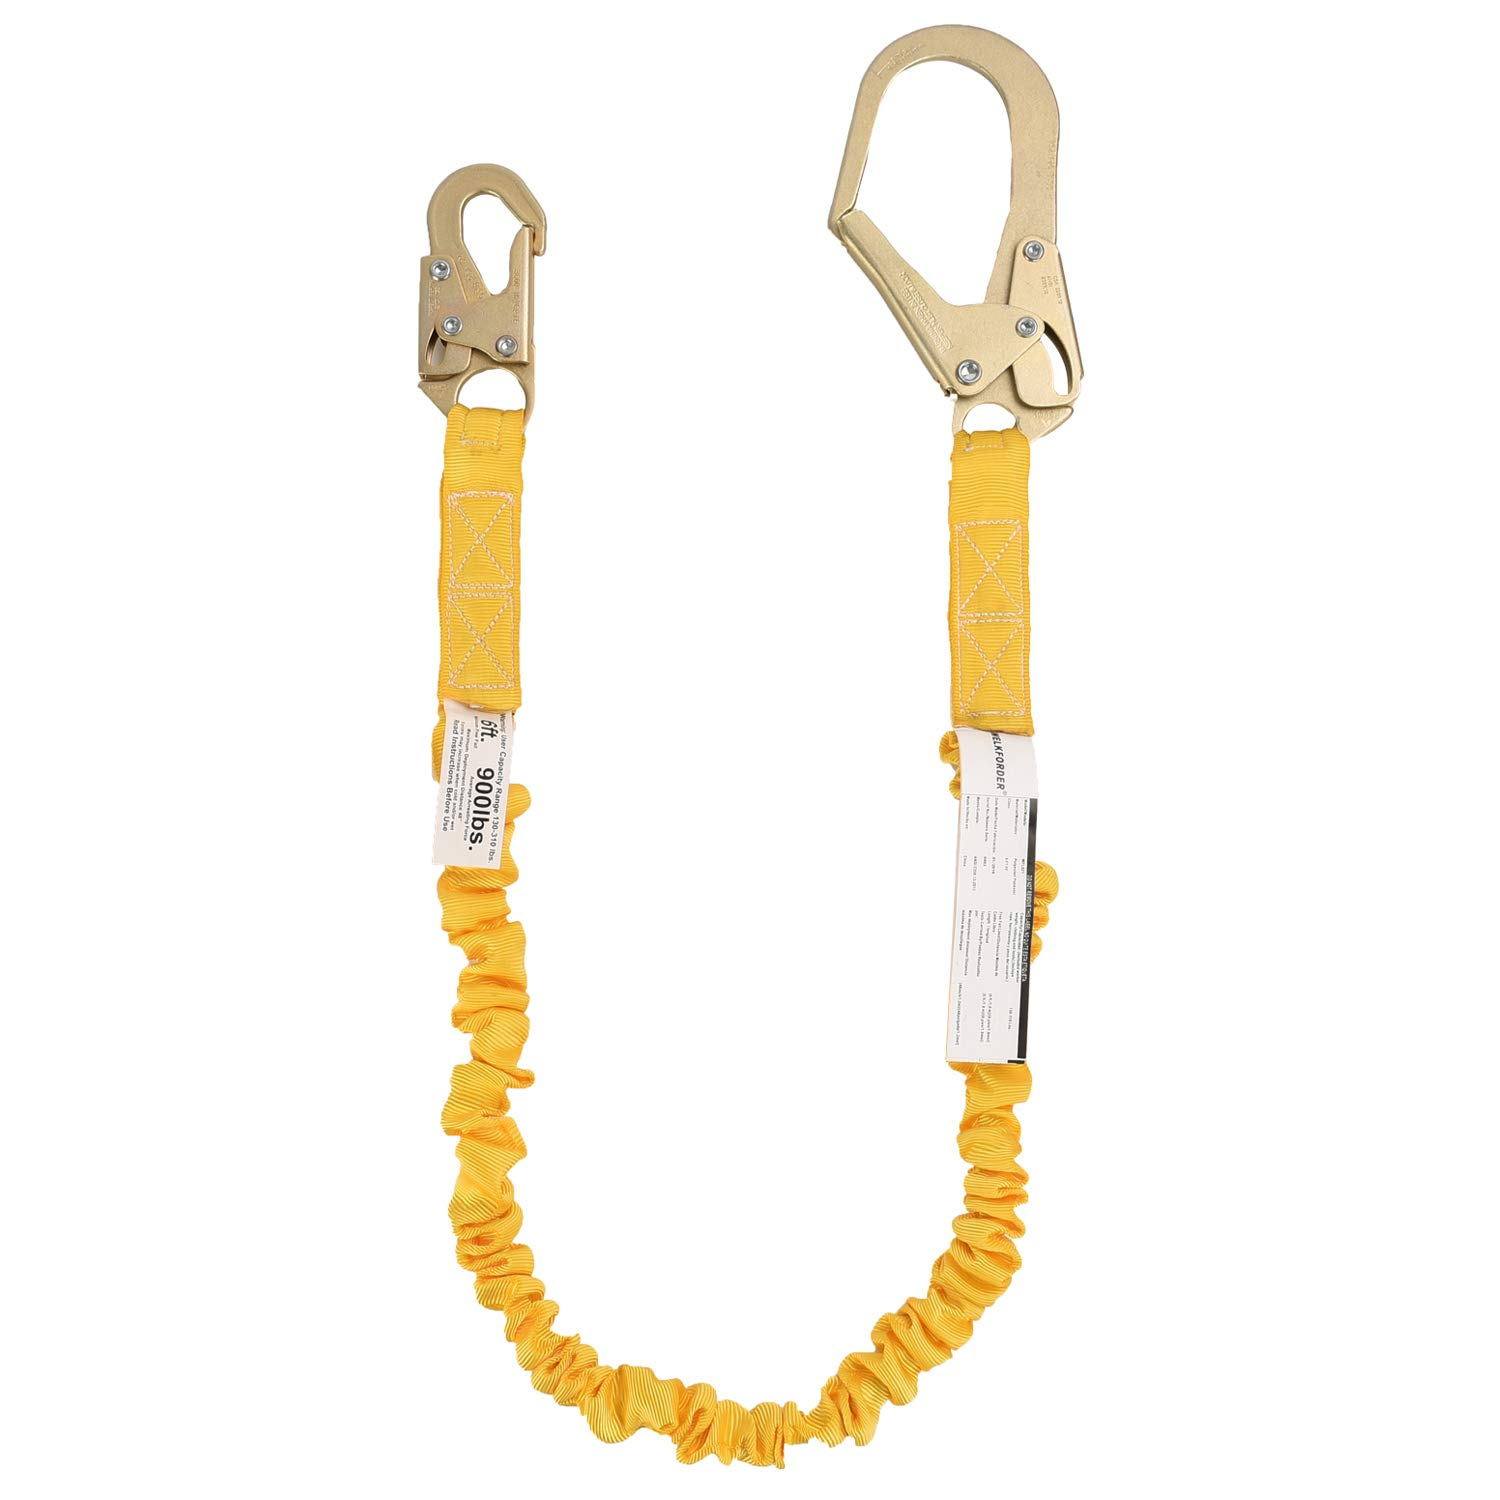 WELKFORDER Single Leg 6-Foot Fall Protection Internal Shock Absorbing Stretchable Safety Lanyard with Snap & Rebar Hook Connectors ANSI Complaint